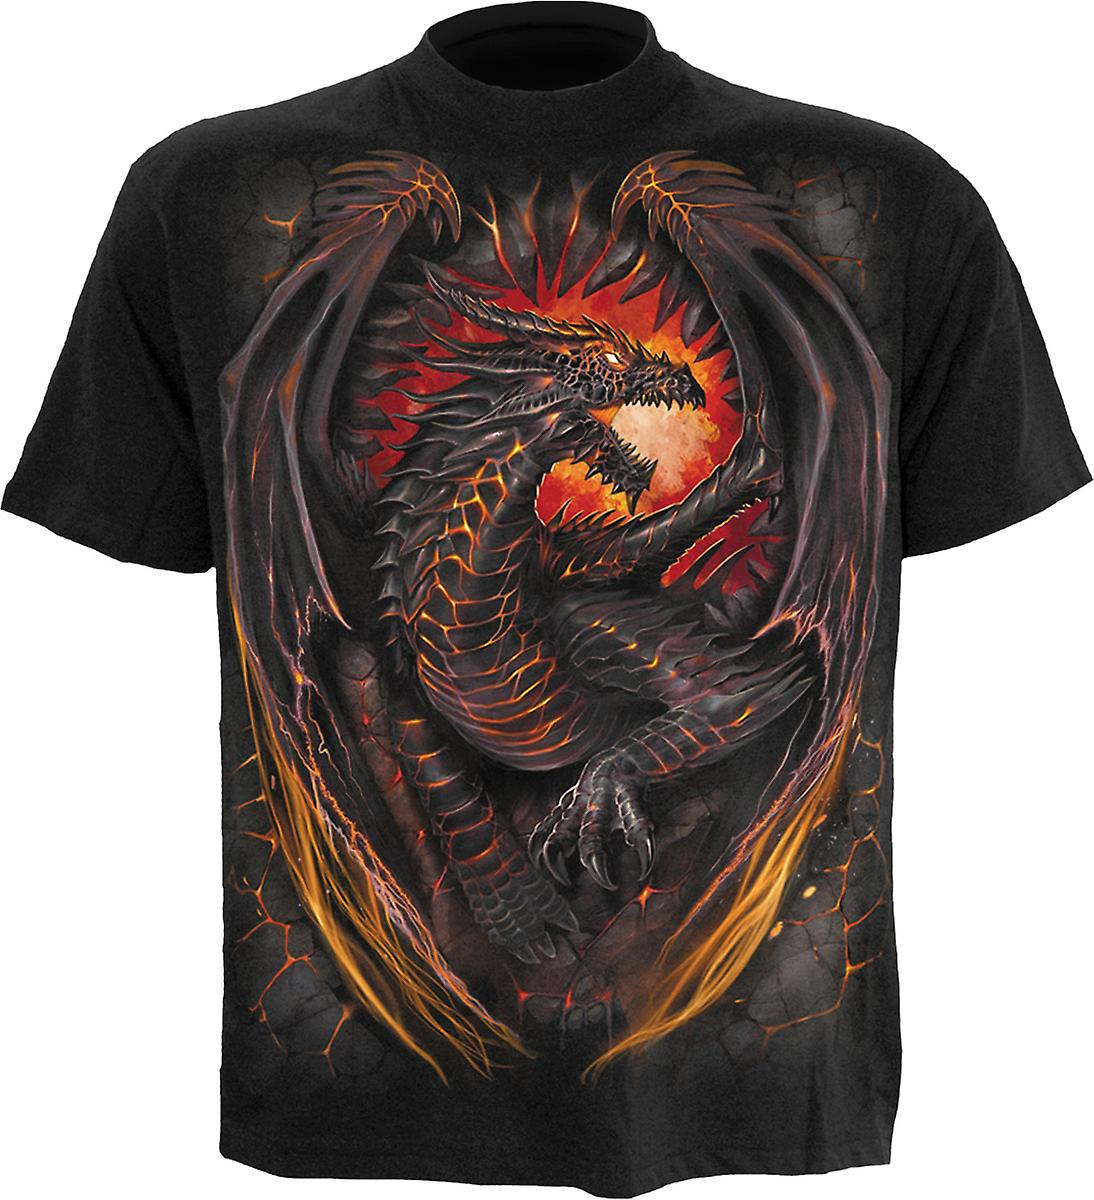 Spiral Direct Gothic DRAGON FURNACE - T-Shirt Black|Dragon|Wings|Flames